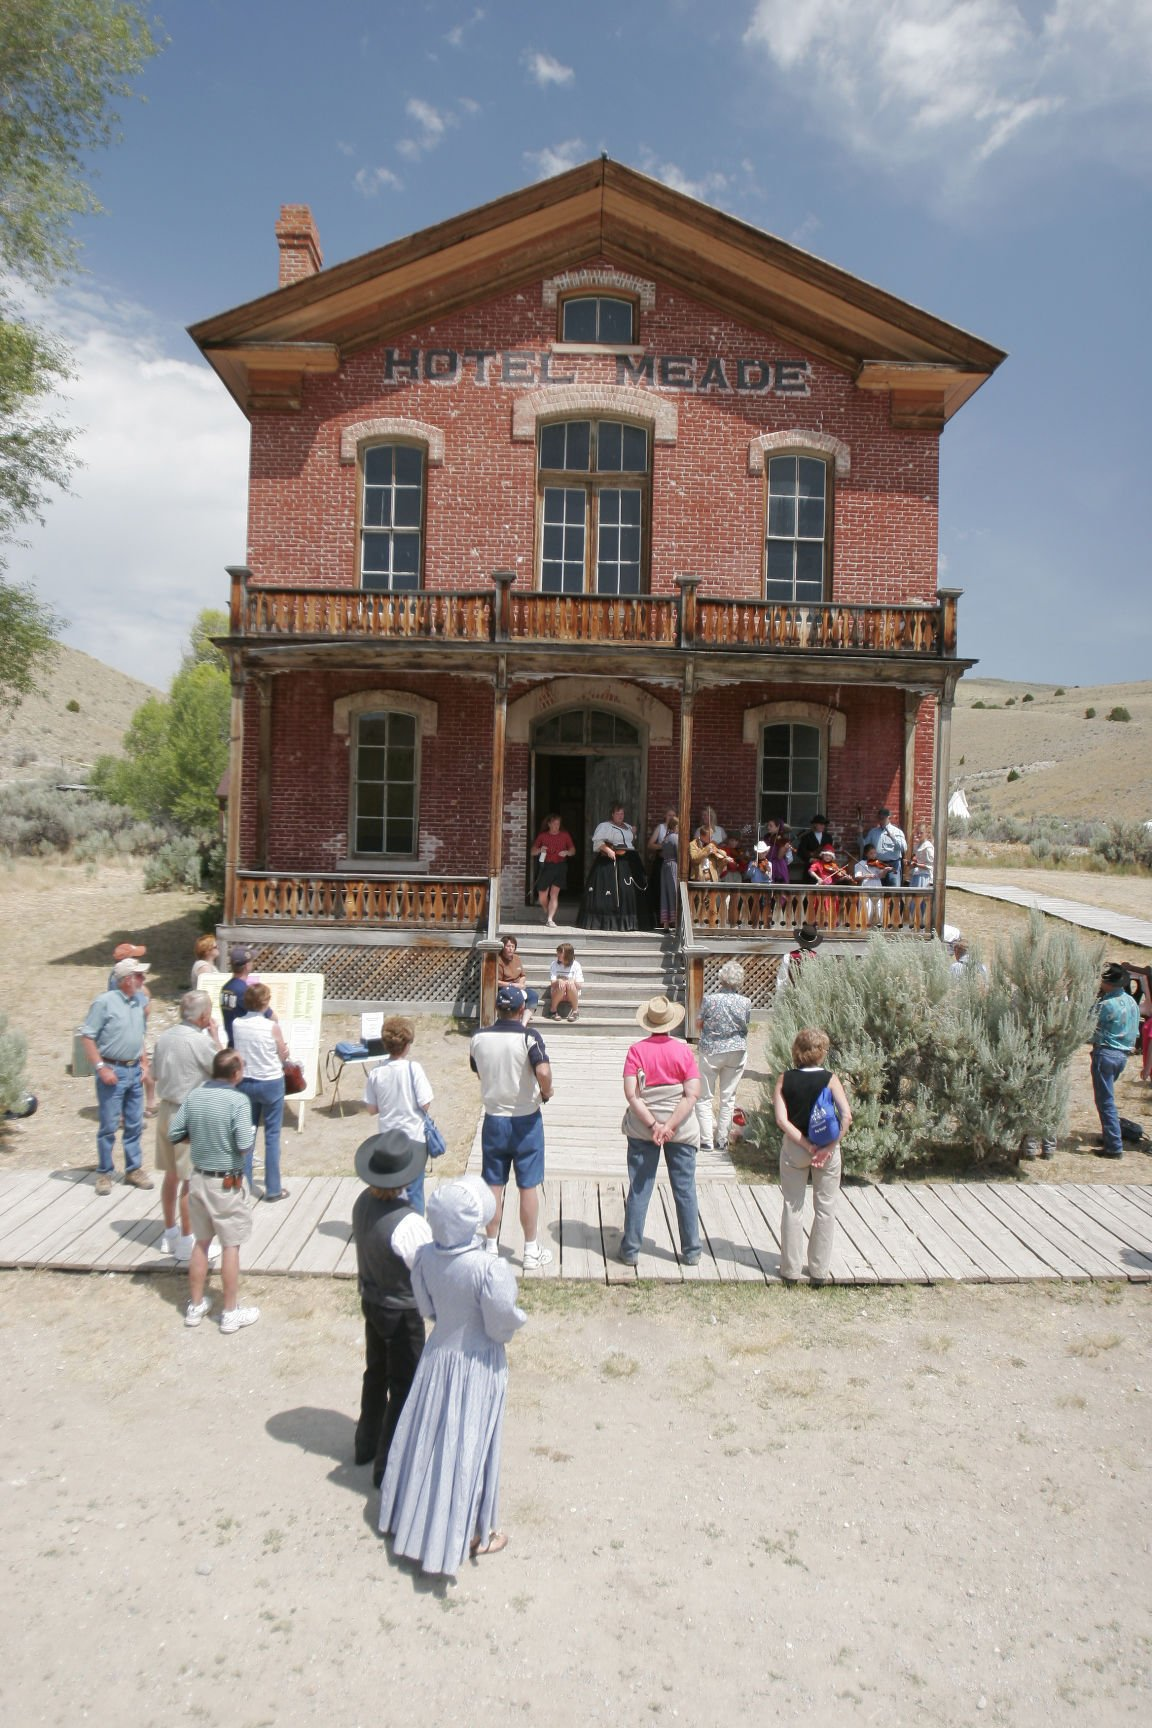 Hotel Mead at Bannack